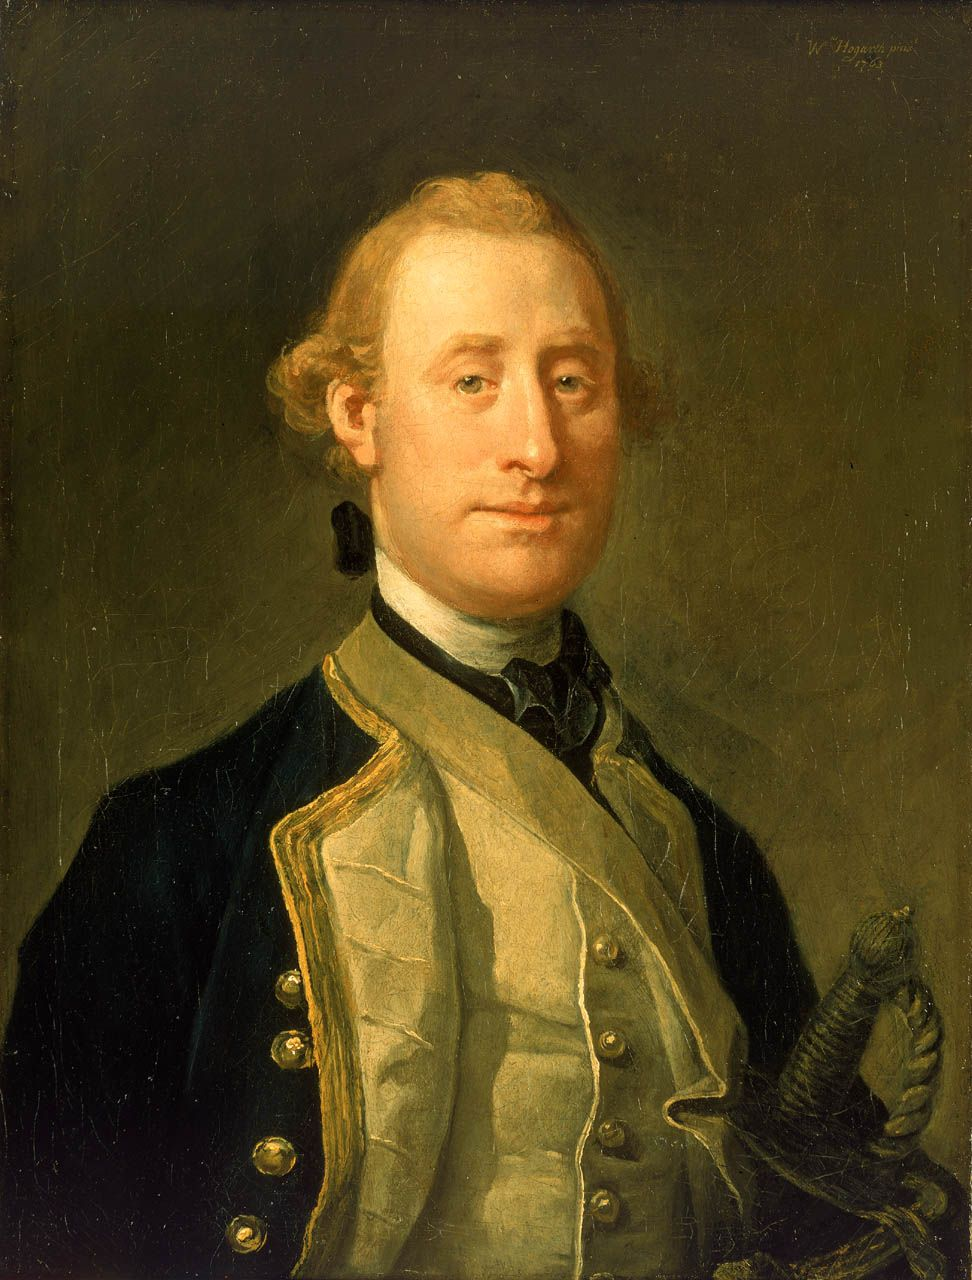 Alexander Schomberg joined the navy in 1743, became a captain in 1757 and after an active and laudable career was knighted in 1777. He commanded the 'Diana', 32 guns, at the taking of Louisbourg in 1758, where he played a distinguished part. In 1759, still in the 'Diana', he assisted at the taking of Quebec and was closely associated with Wolfe. He later commanded the 'Essex' and at the peace of 1763 he married Arabella Susanna Chalmers.